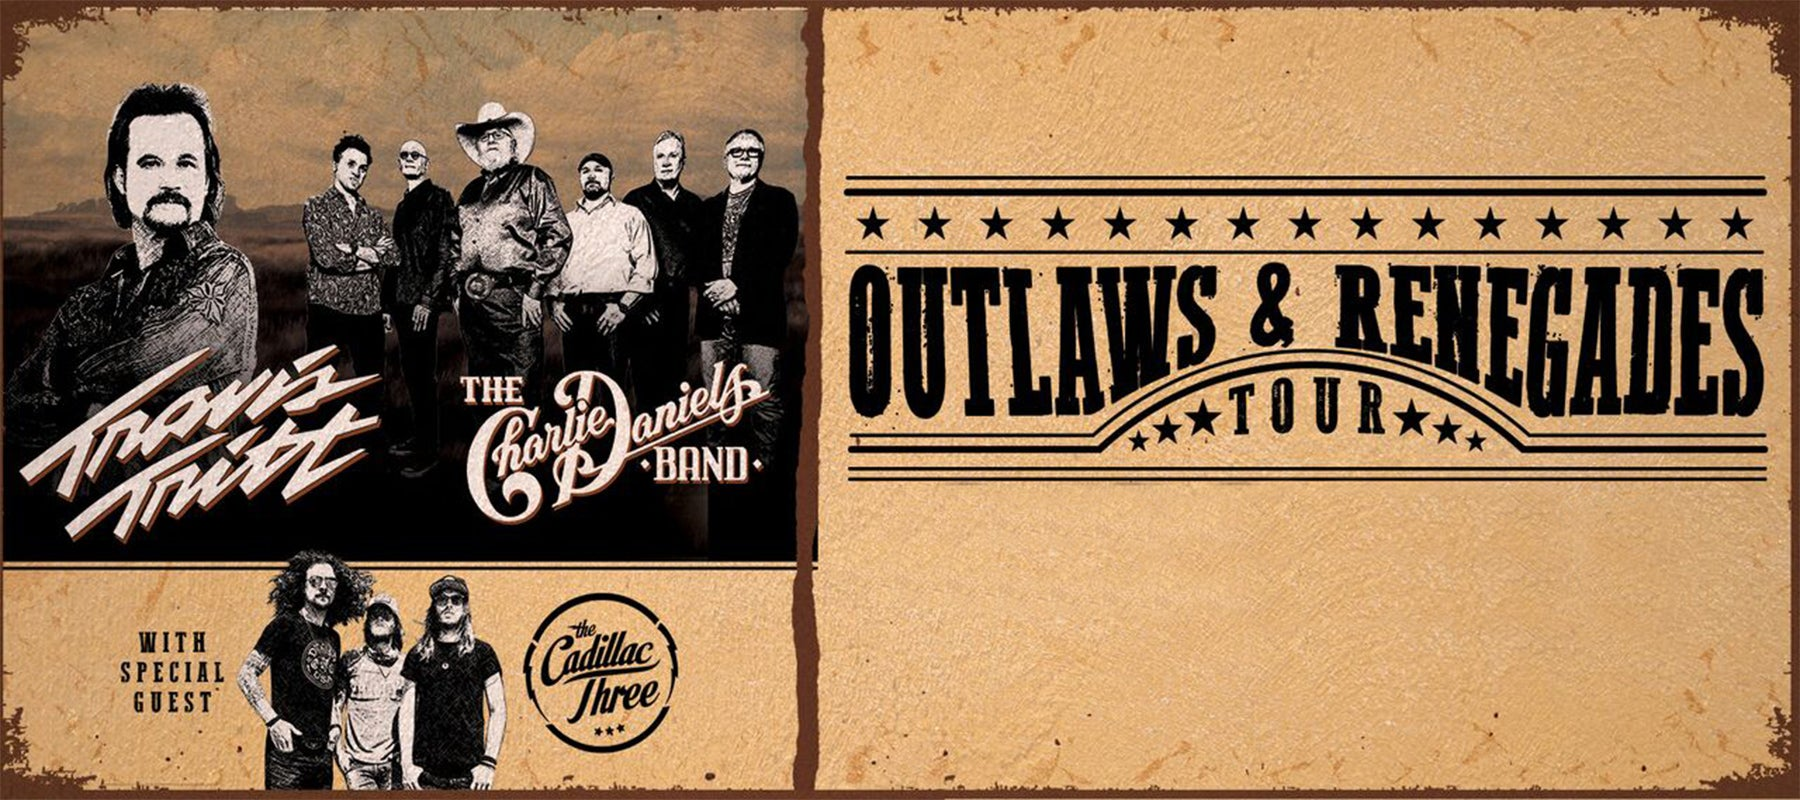 Travis Tritt: The Outlaws and Renegades Tour